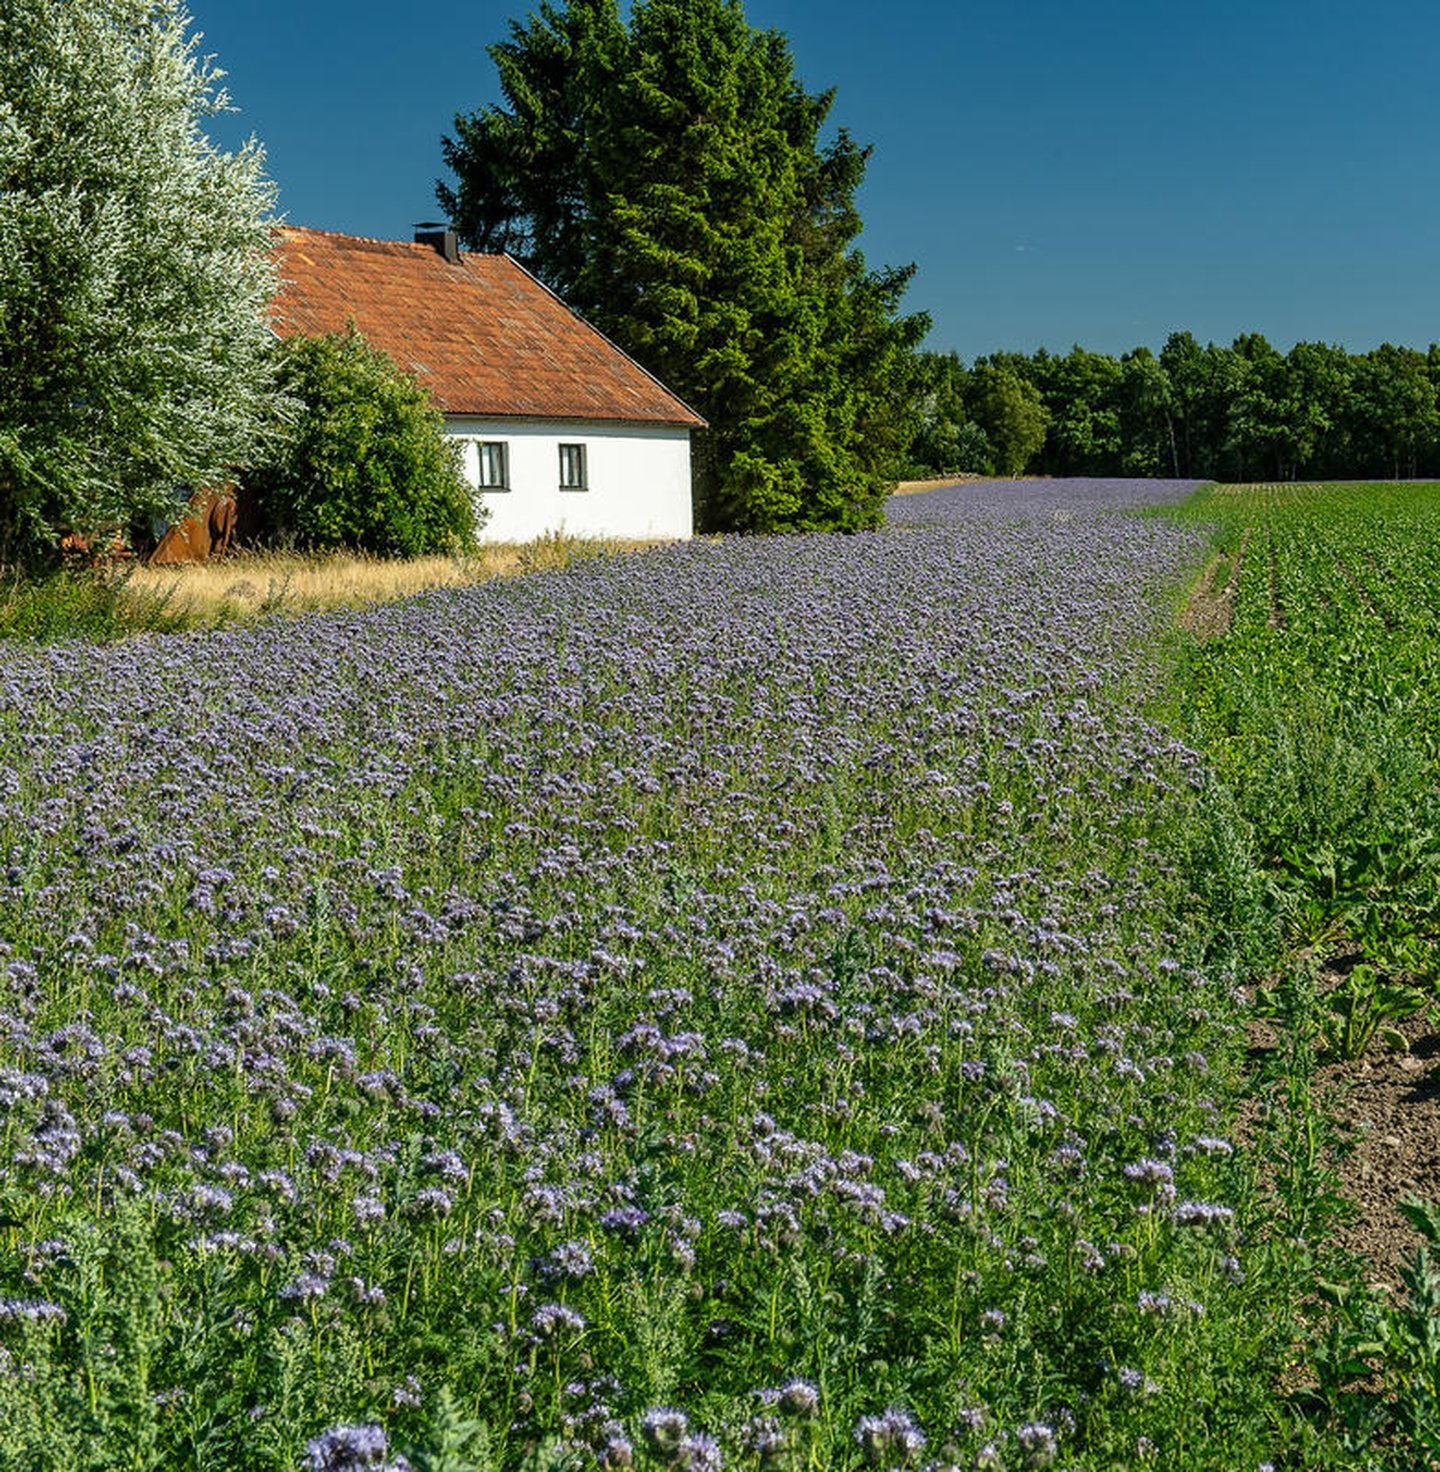 Lacy phacelia (Phacelia tanacetifolia). Sown at the edge of a field to promote biodiversity.